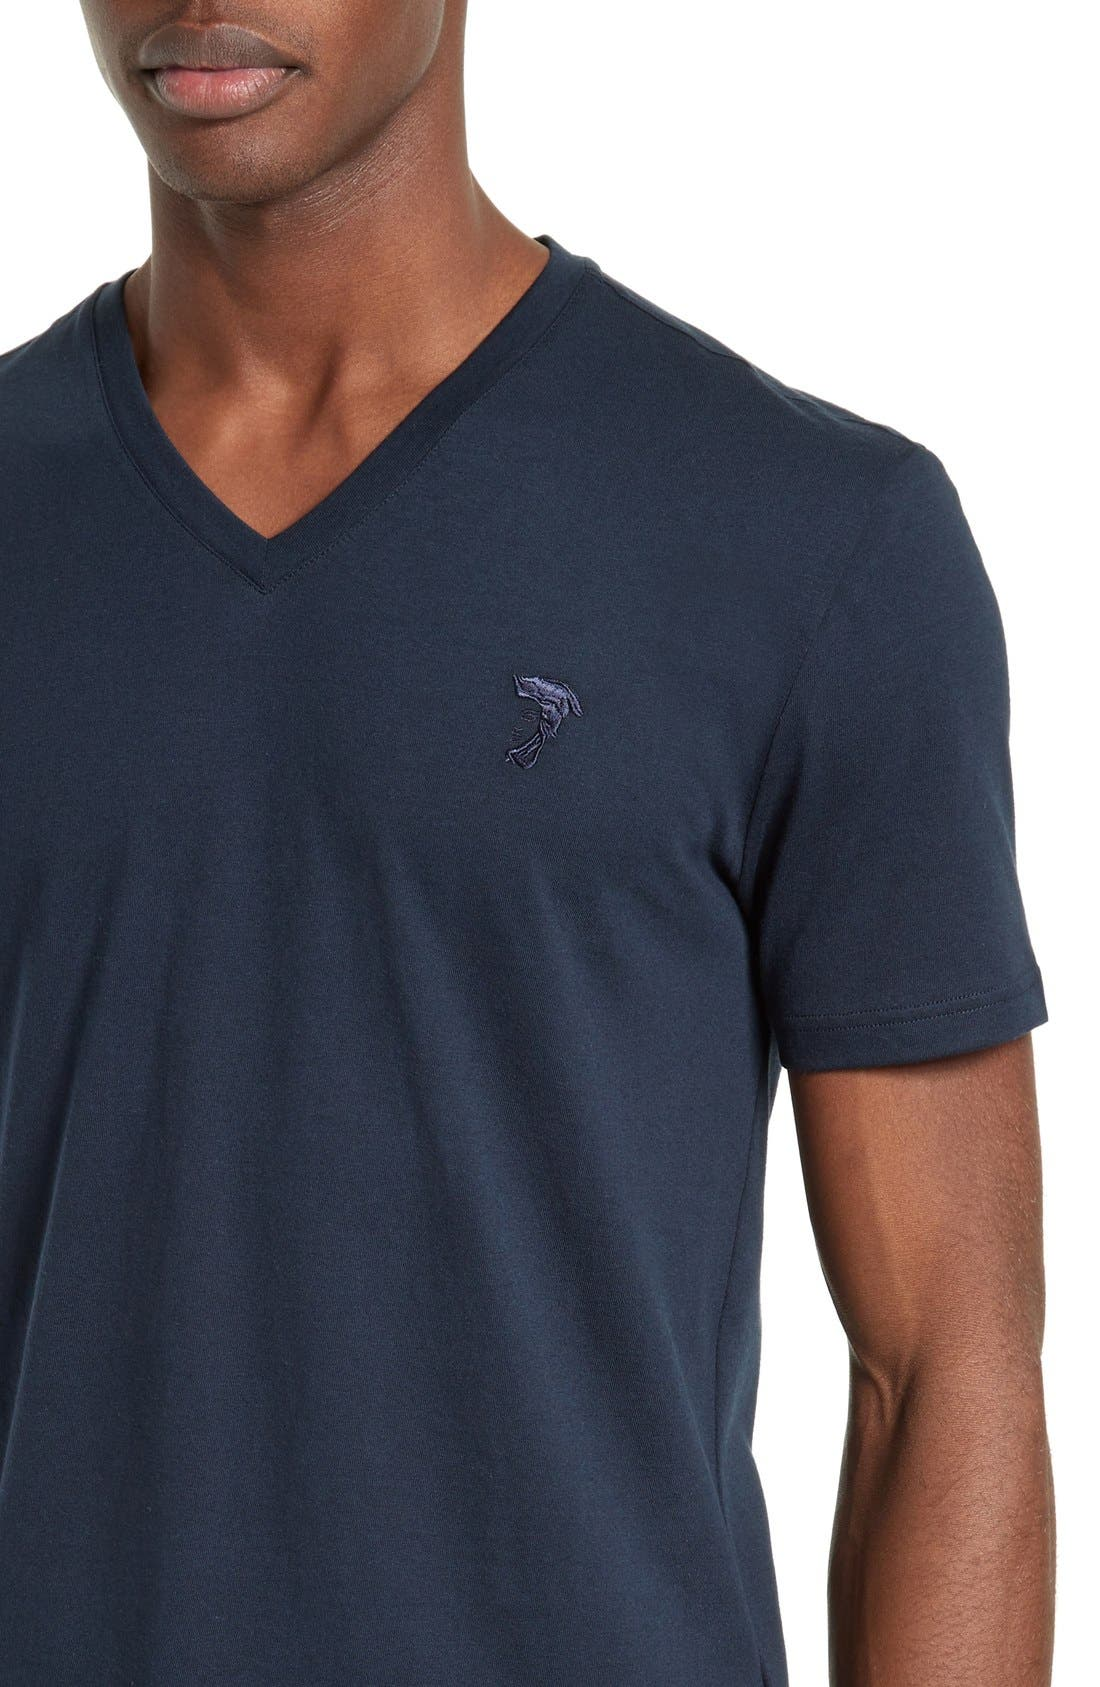 Medusa V-Neck T-Shirt,                             Alternate thumbnail 3, color,                             410